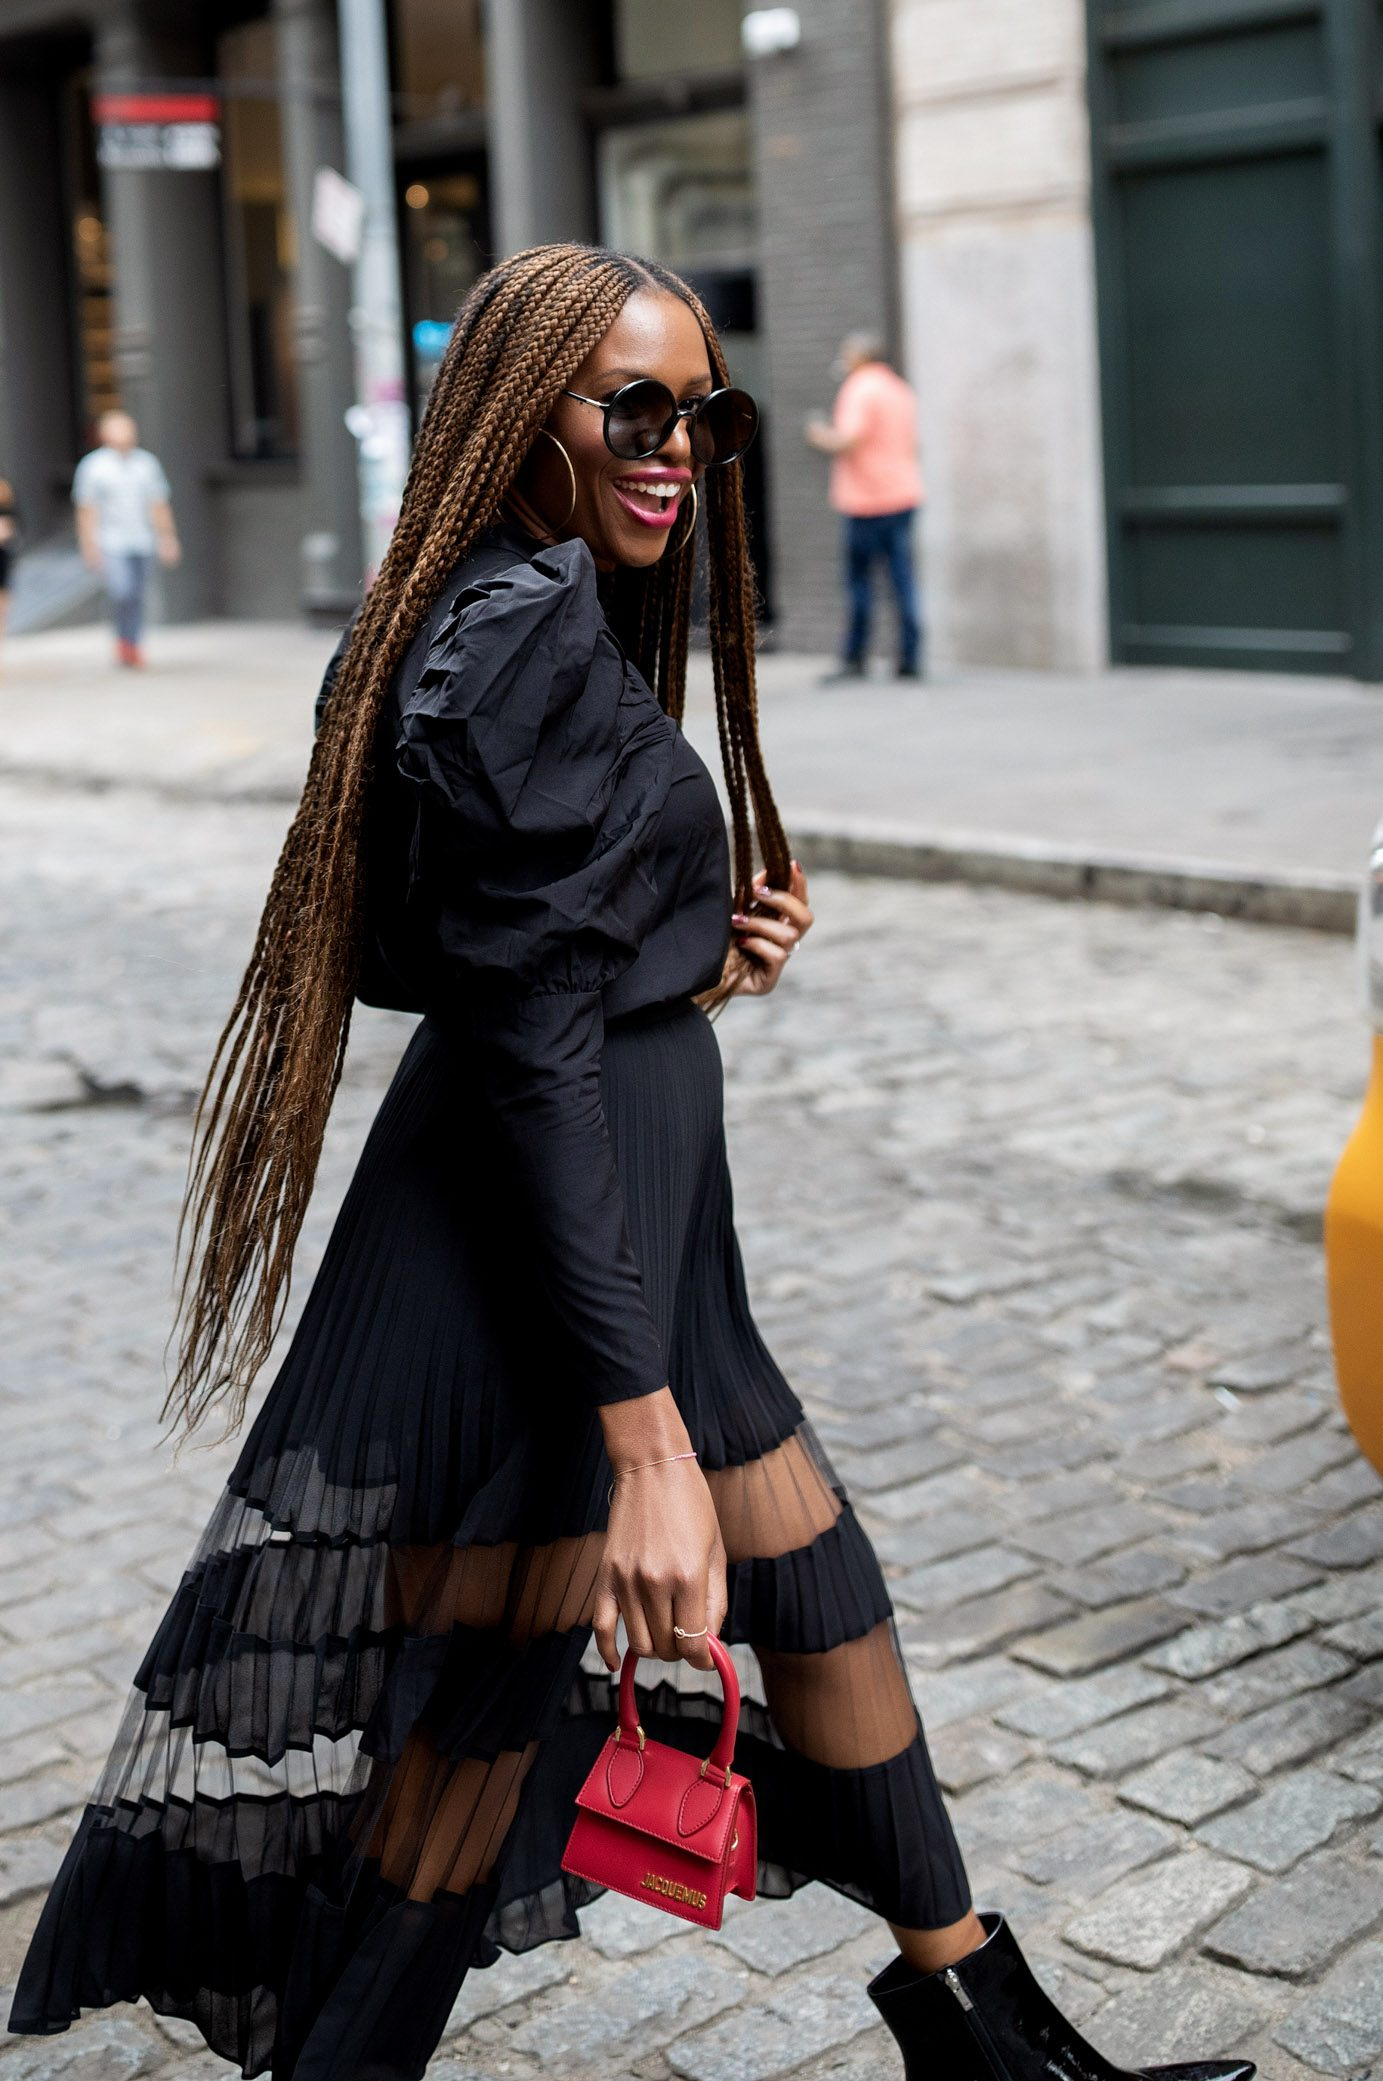 atlanta fashion blogger monica awe-etuk, nyfw, fashion trends, how to survive nyfw, street style, wearing other stories black puff sleeve top and black sheer midi skir, Jacquemus small bag, red bag, marc fischer boots, round sunglasses, croc boots, how to wear booties with a skirt, long braids, how to wear puff sleeves